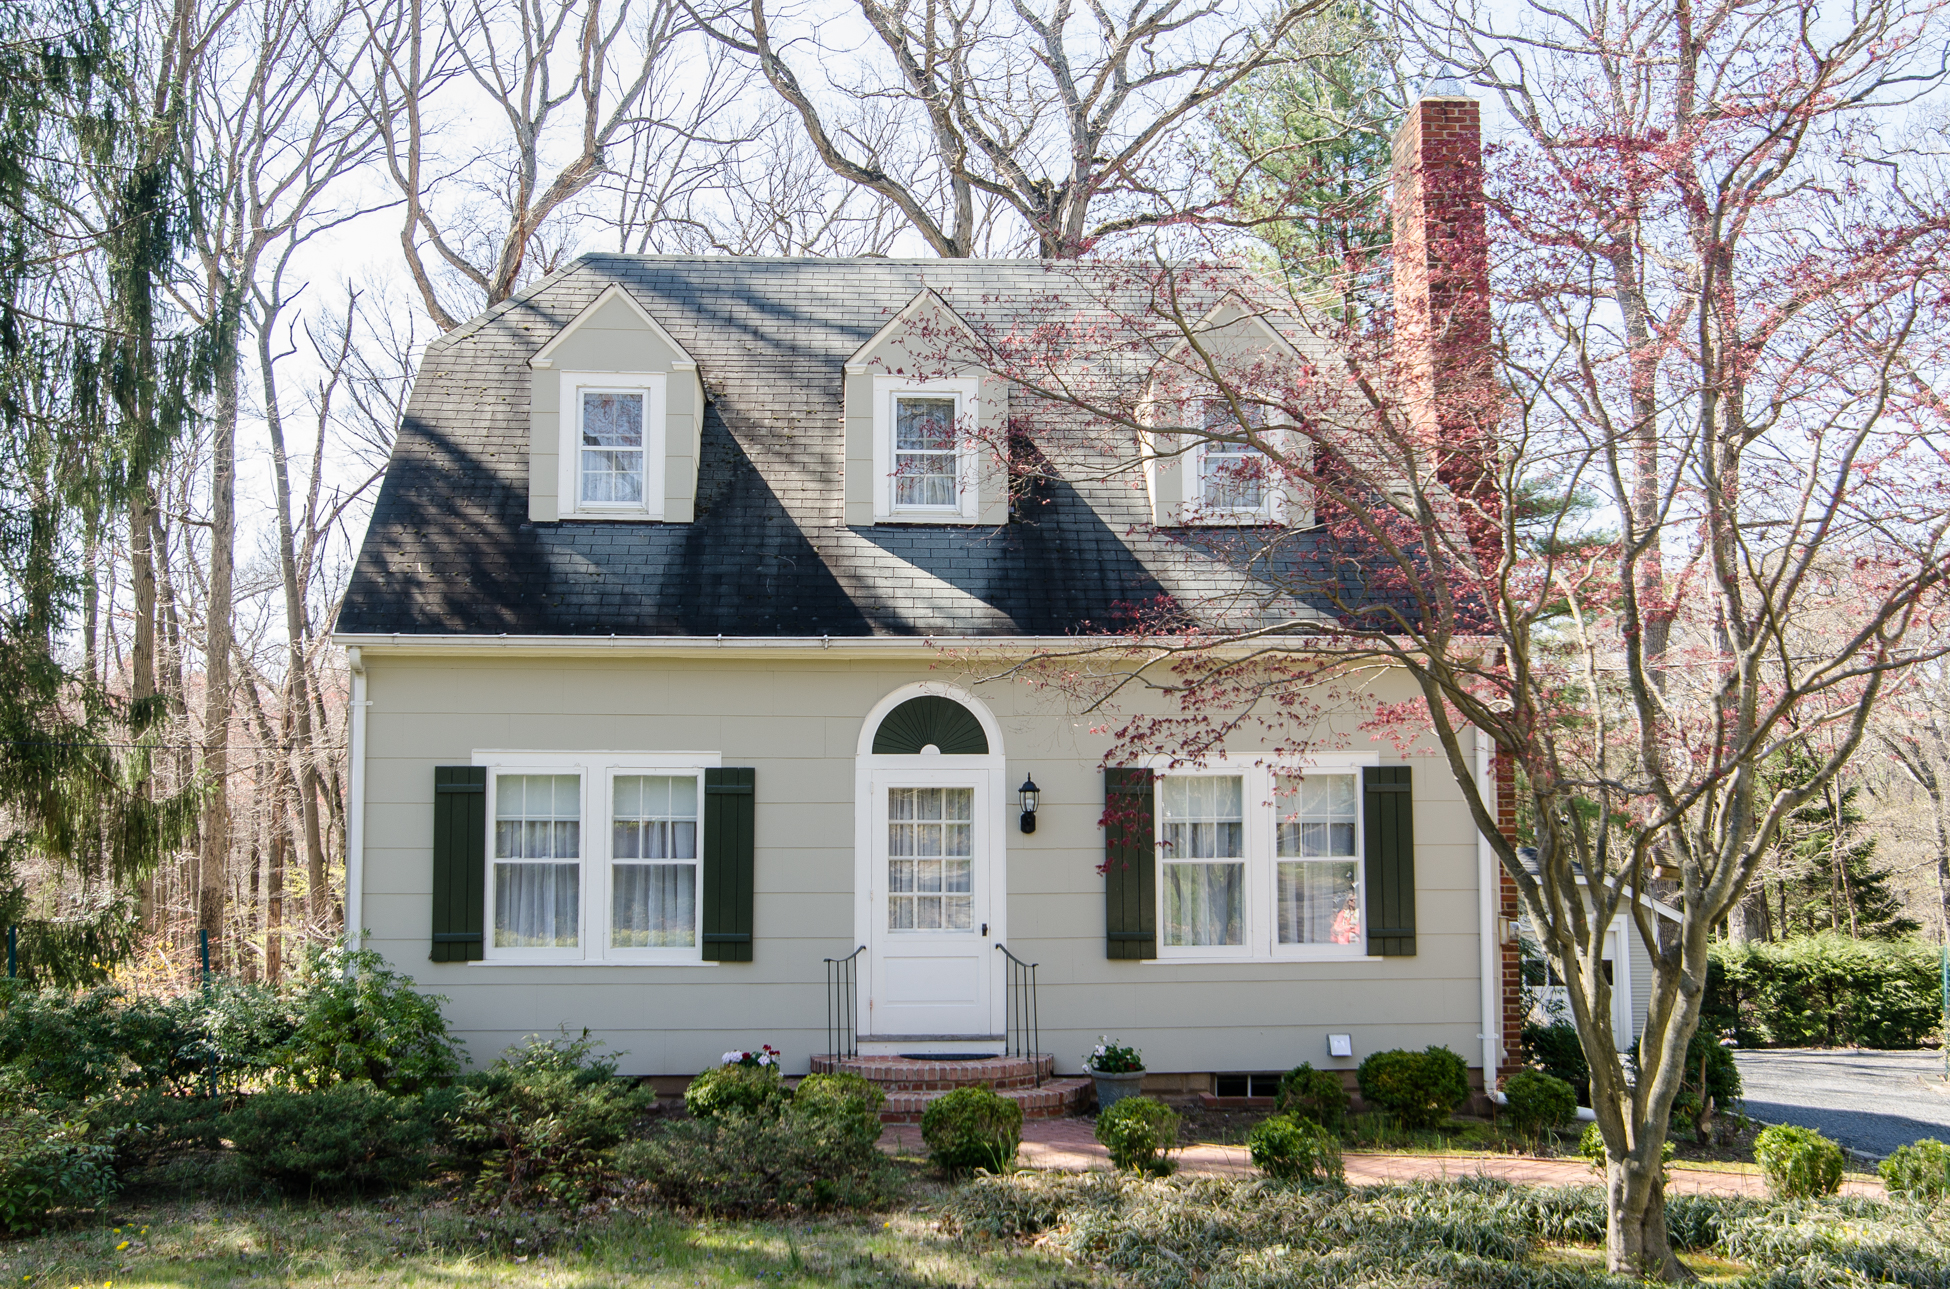 Single Family Home for Sale at Like a Page from a Storybook - West Windsor Township 61 North Mill Road Princeton Junction, New Jersey, 08550 United States